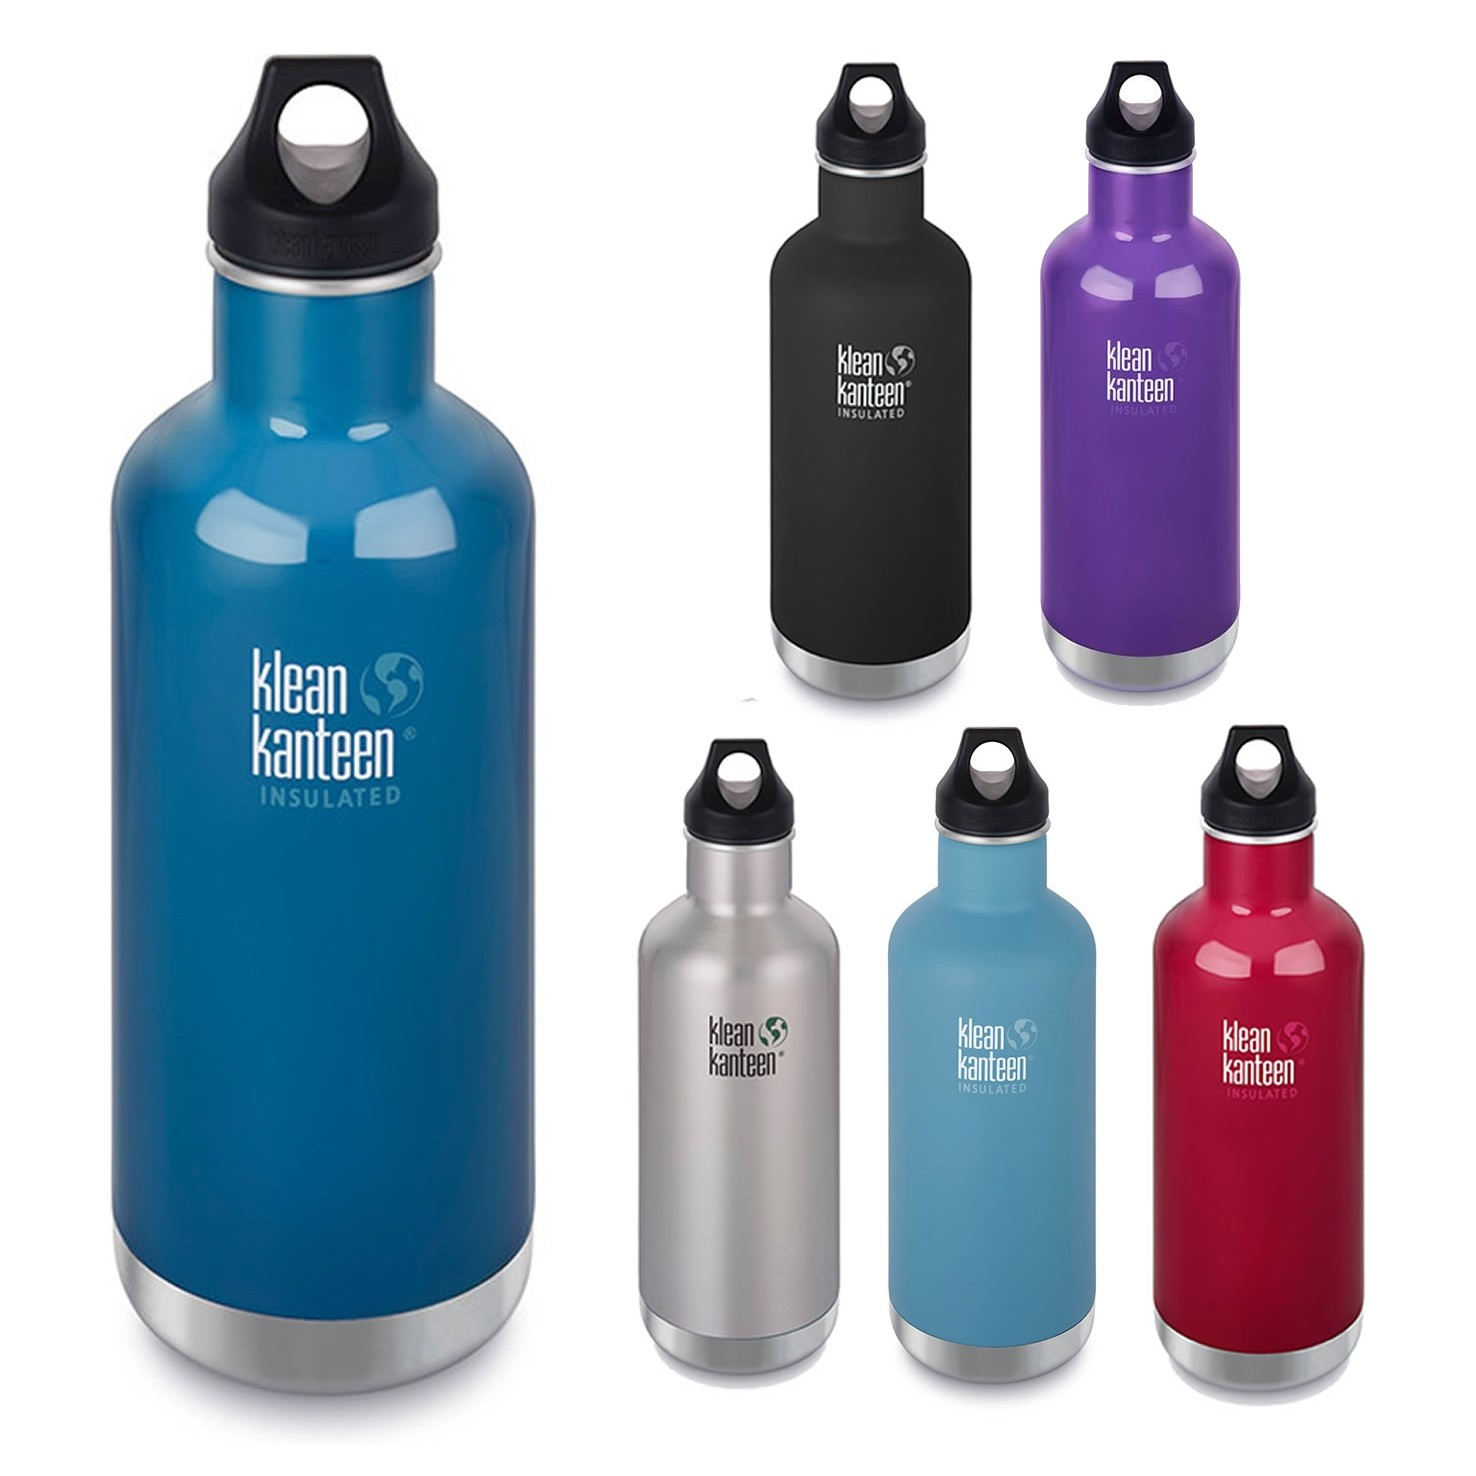 2e93144172 Klean Kanteen 32oz Insulated Classic. Tap to expand